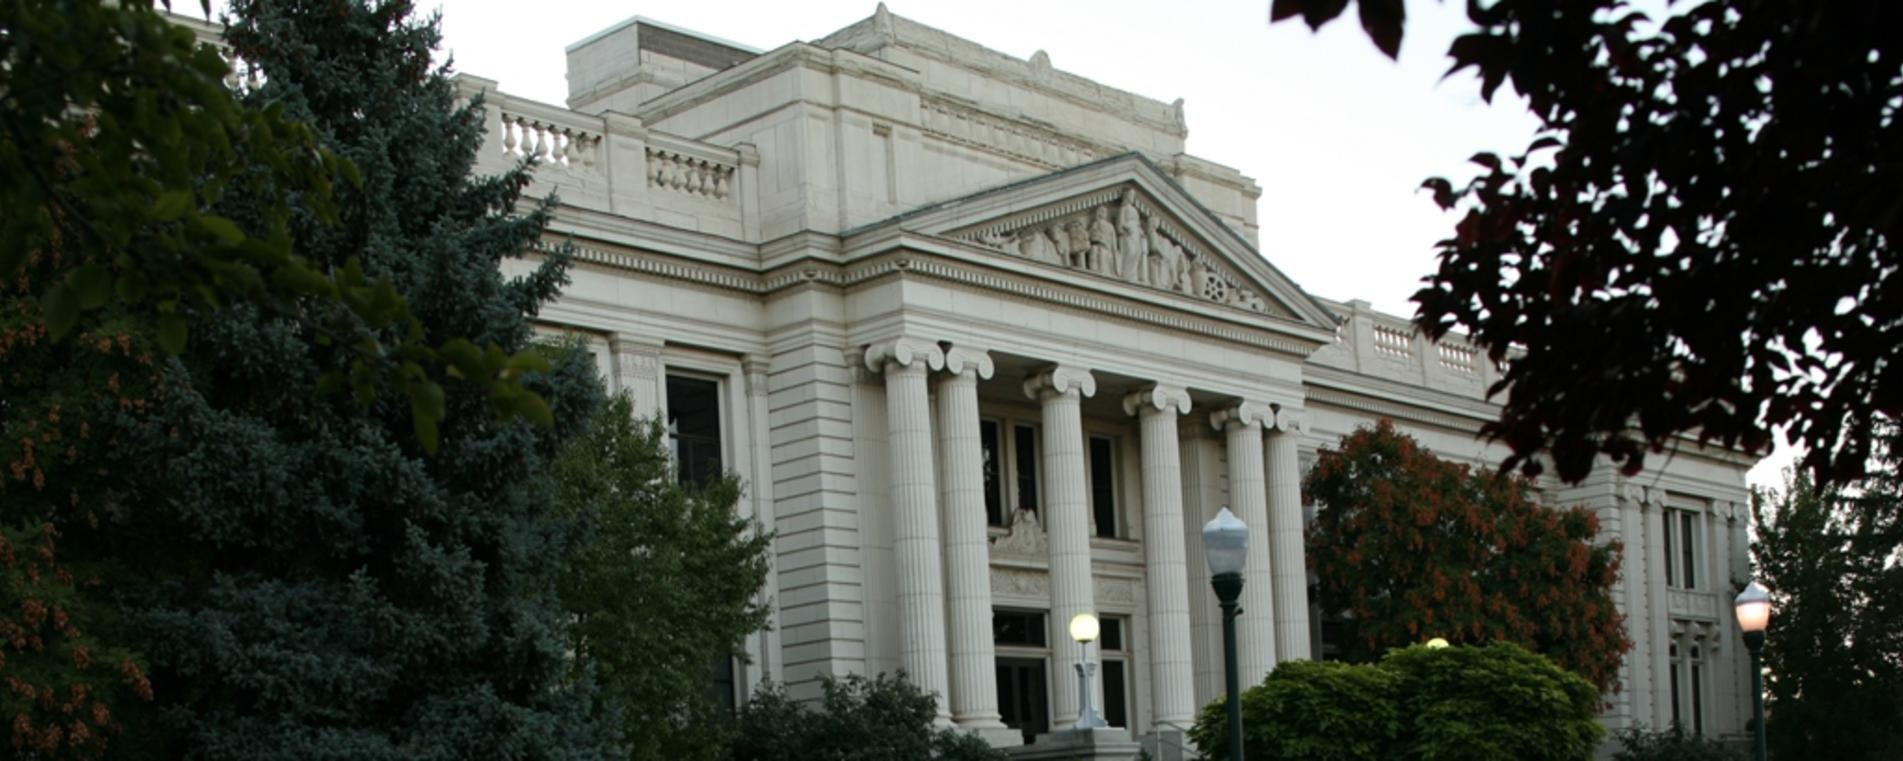 Historic Utah County Courthouse